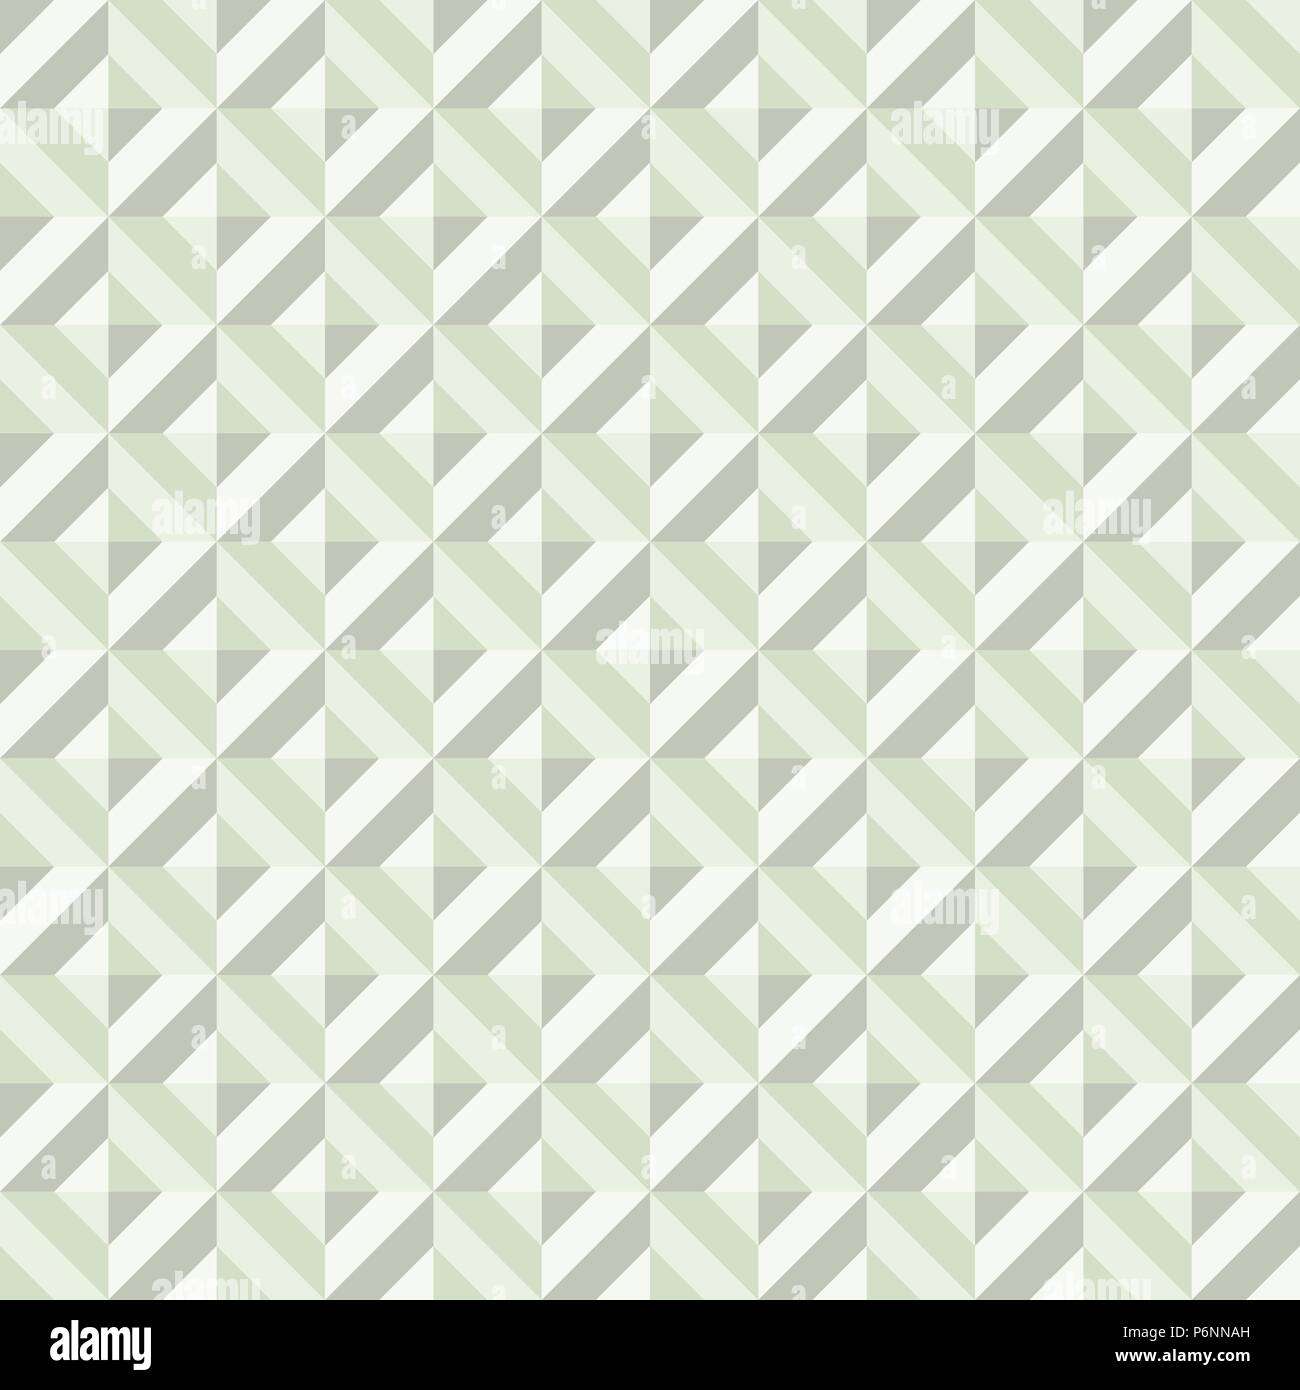 Green Abstract rectangle seamless pattern. Modern rectangle for graphic design. - Stock Vector